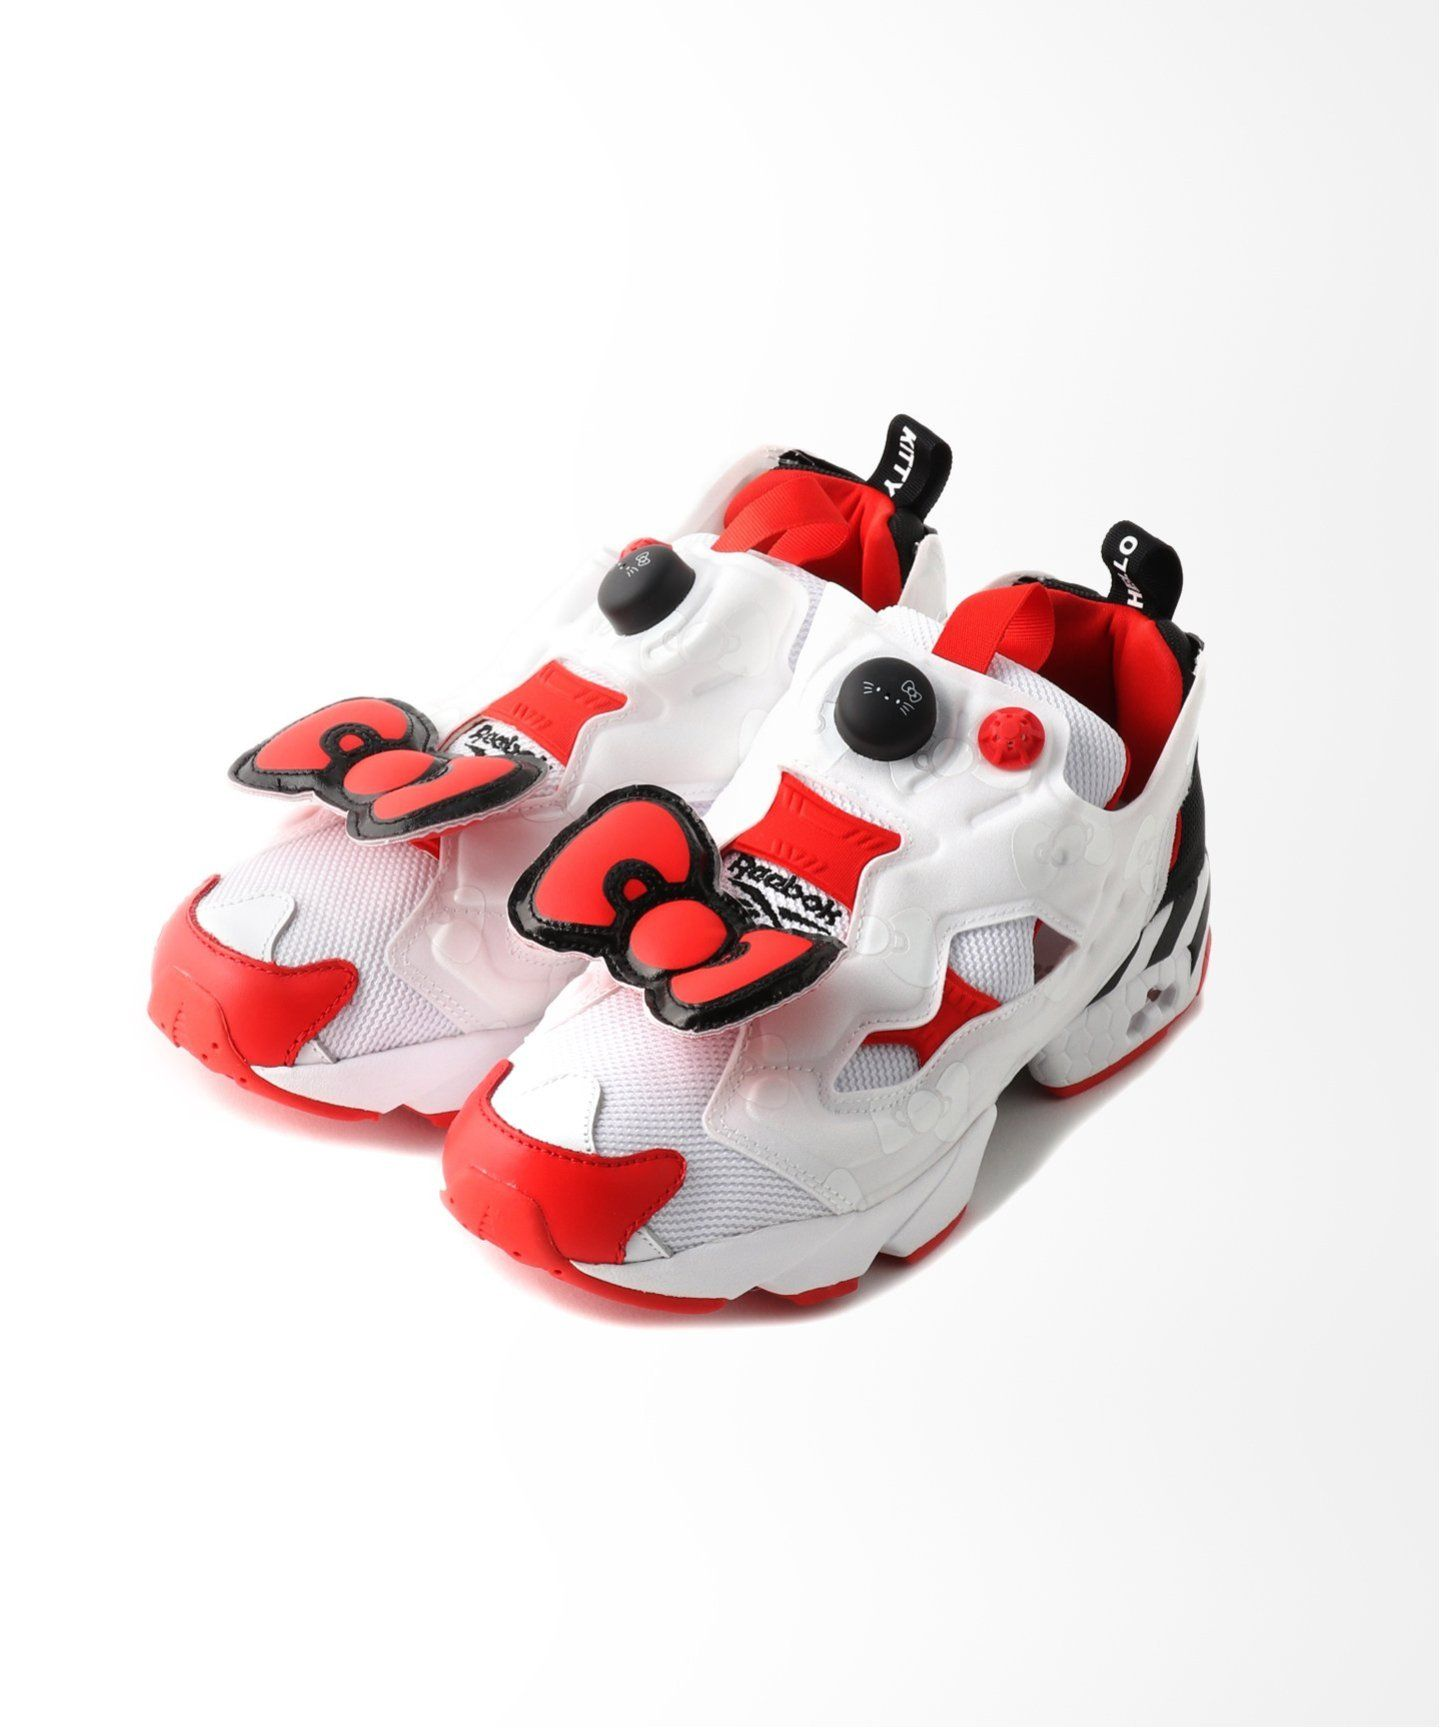 BOICE FROM BAYCREW'S|【Reebok HELLO KITTY】INSTAPUMP FURY